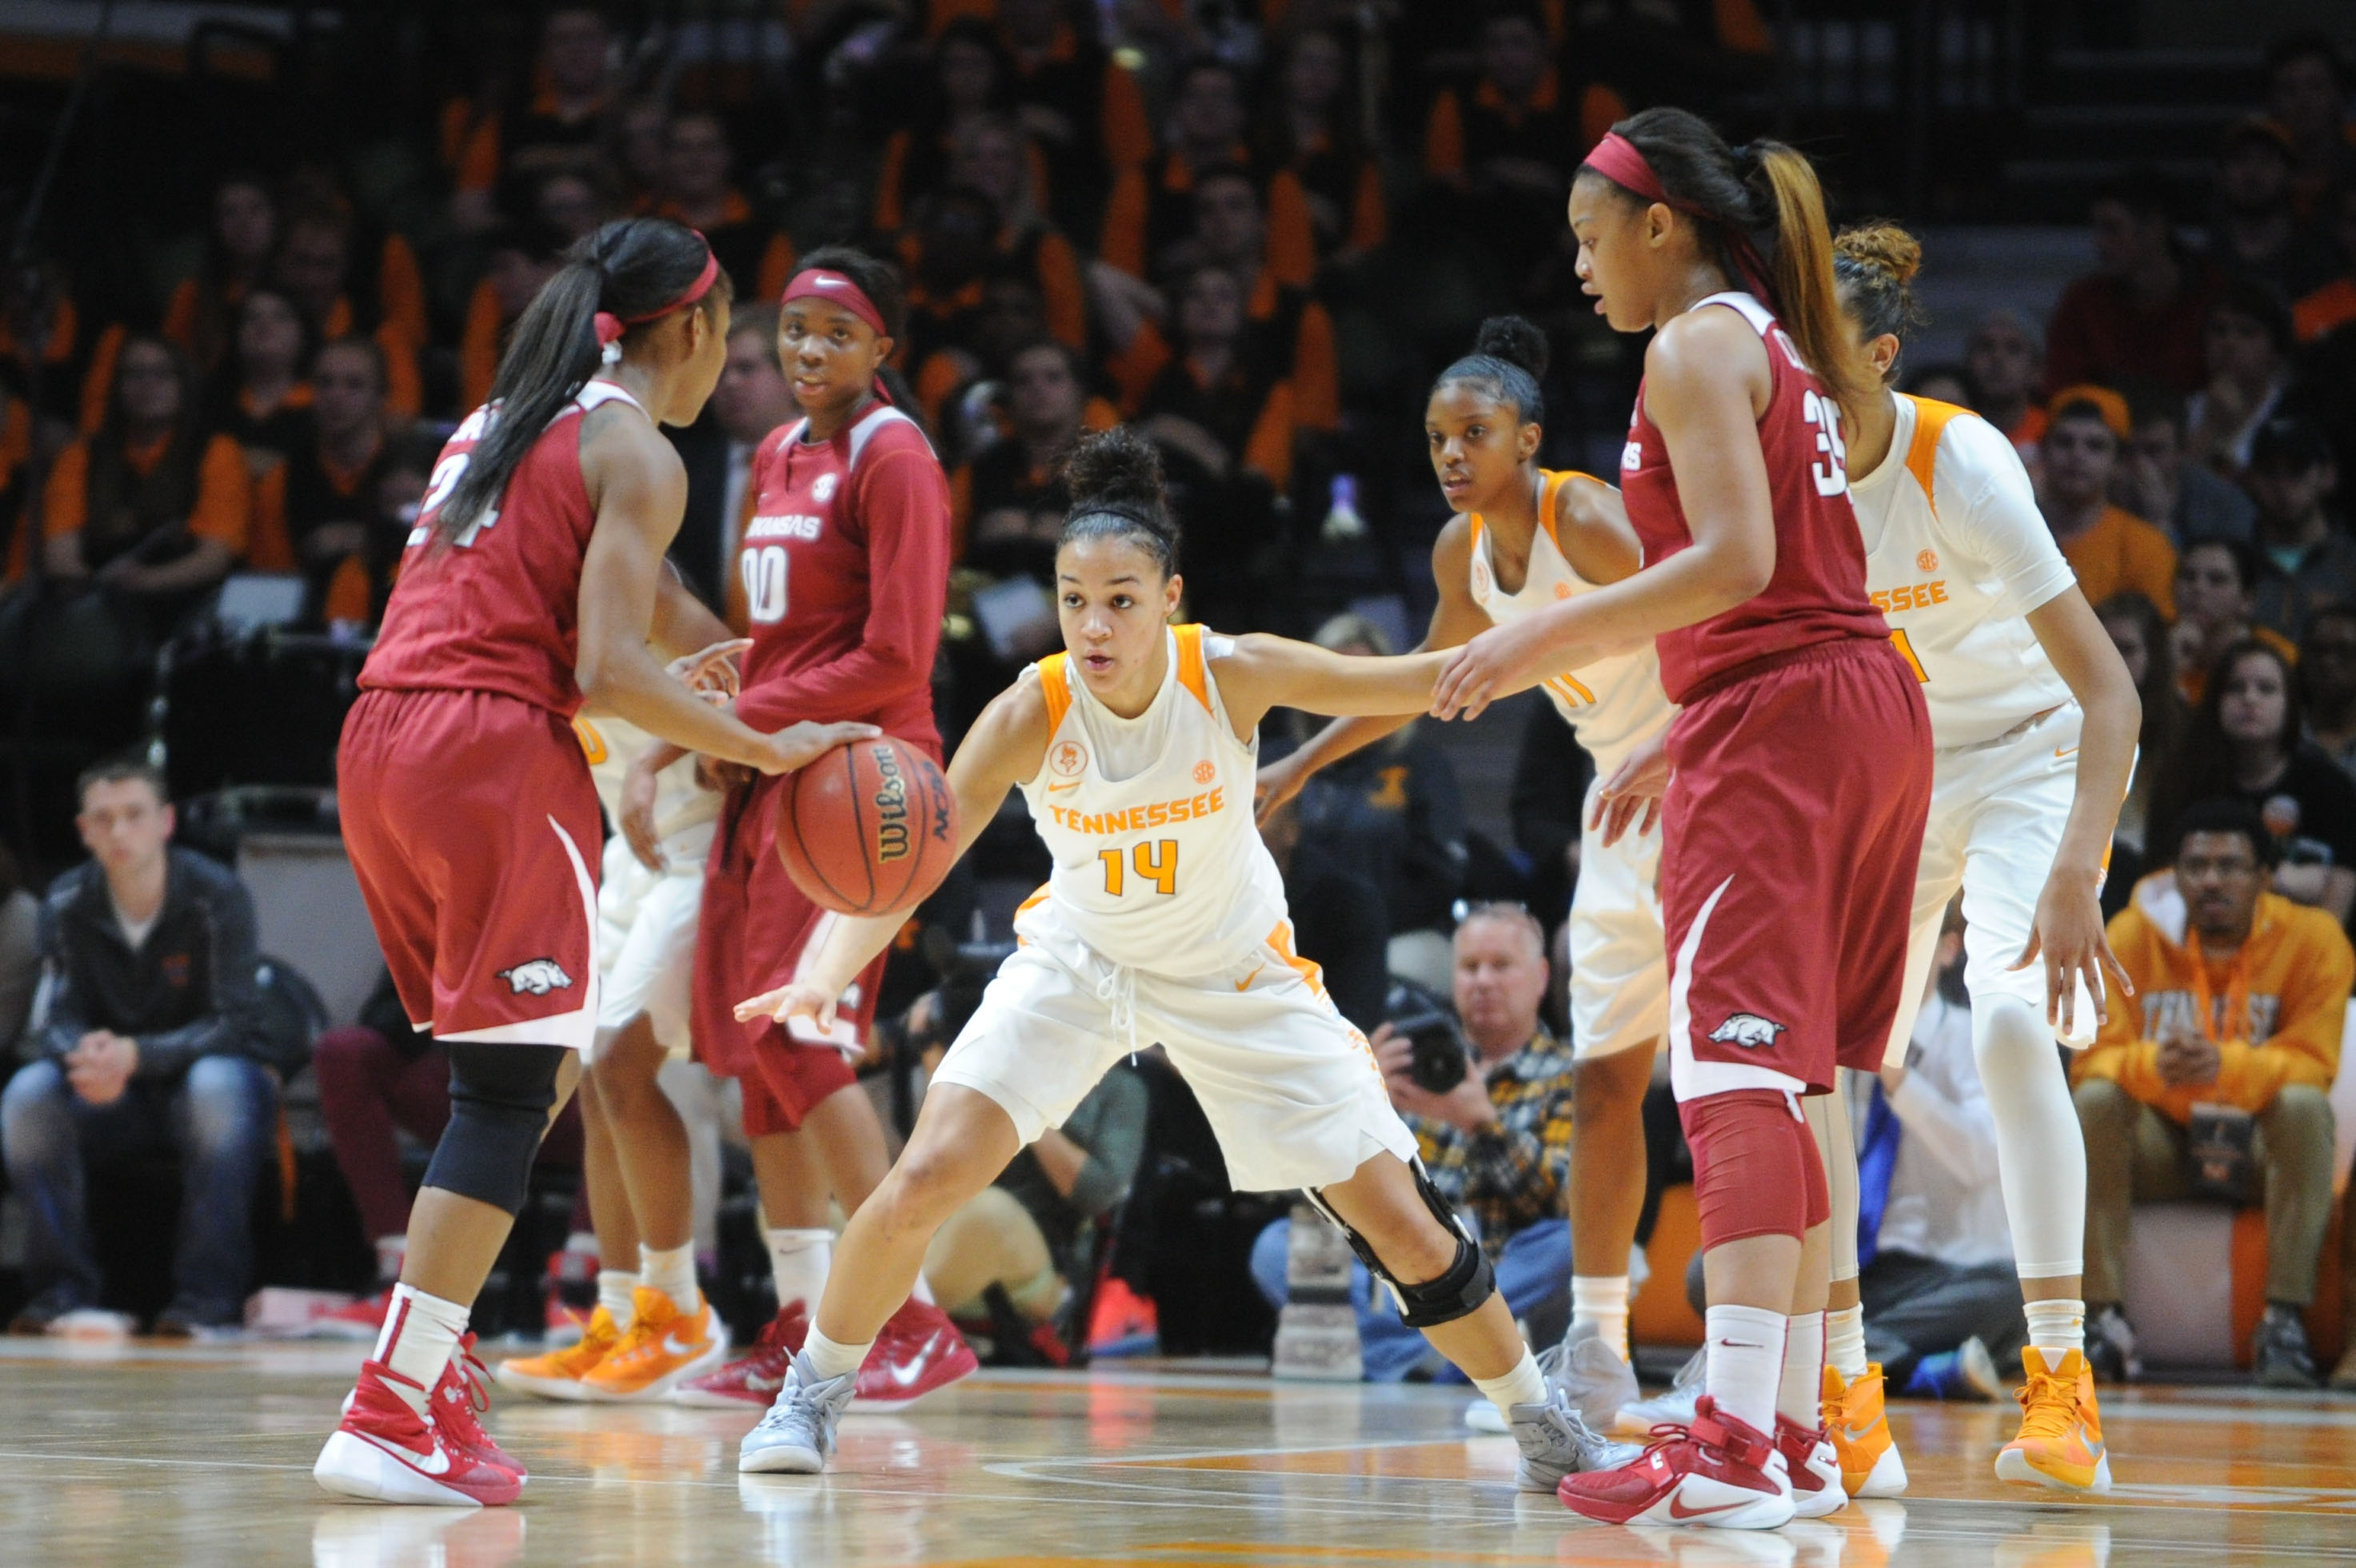 Tennessee guard Andraya Carter (14) defends Arkansas guard Jordan Danberry (24) during the first half of a NCAA college basketball game on Thursday, Feb. 4, 2016, in Knoxville, Tenn. Tennessee defeated Arkansas 75-57. (Caitie McMekin/Knoxville News Sentin